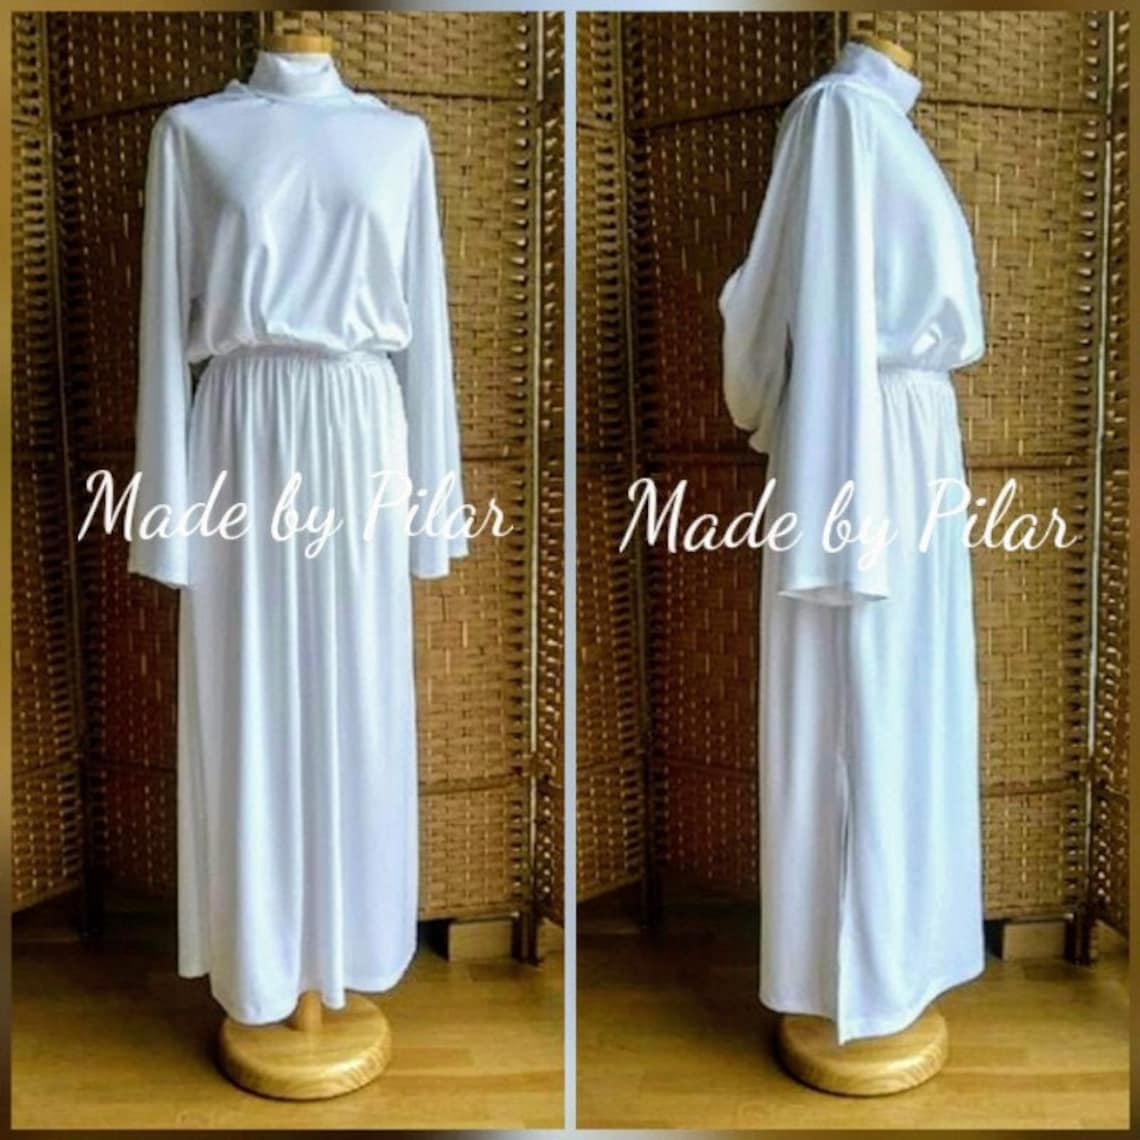 17. Leia senatorial cosplay, knit fabric, Leía dress (made to order and made to measure)